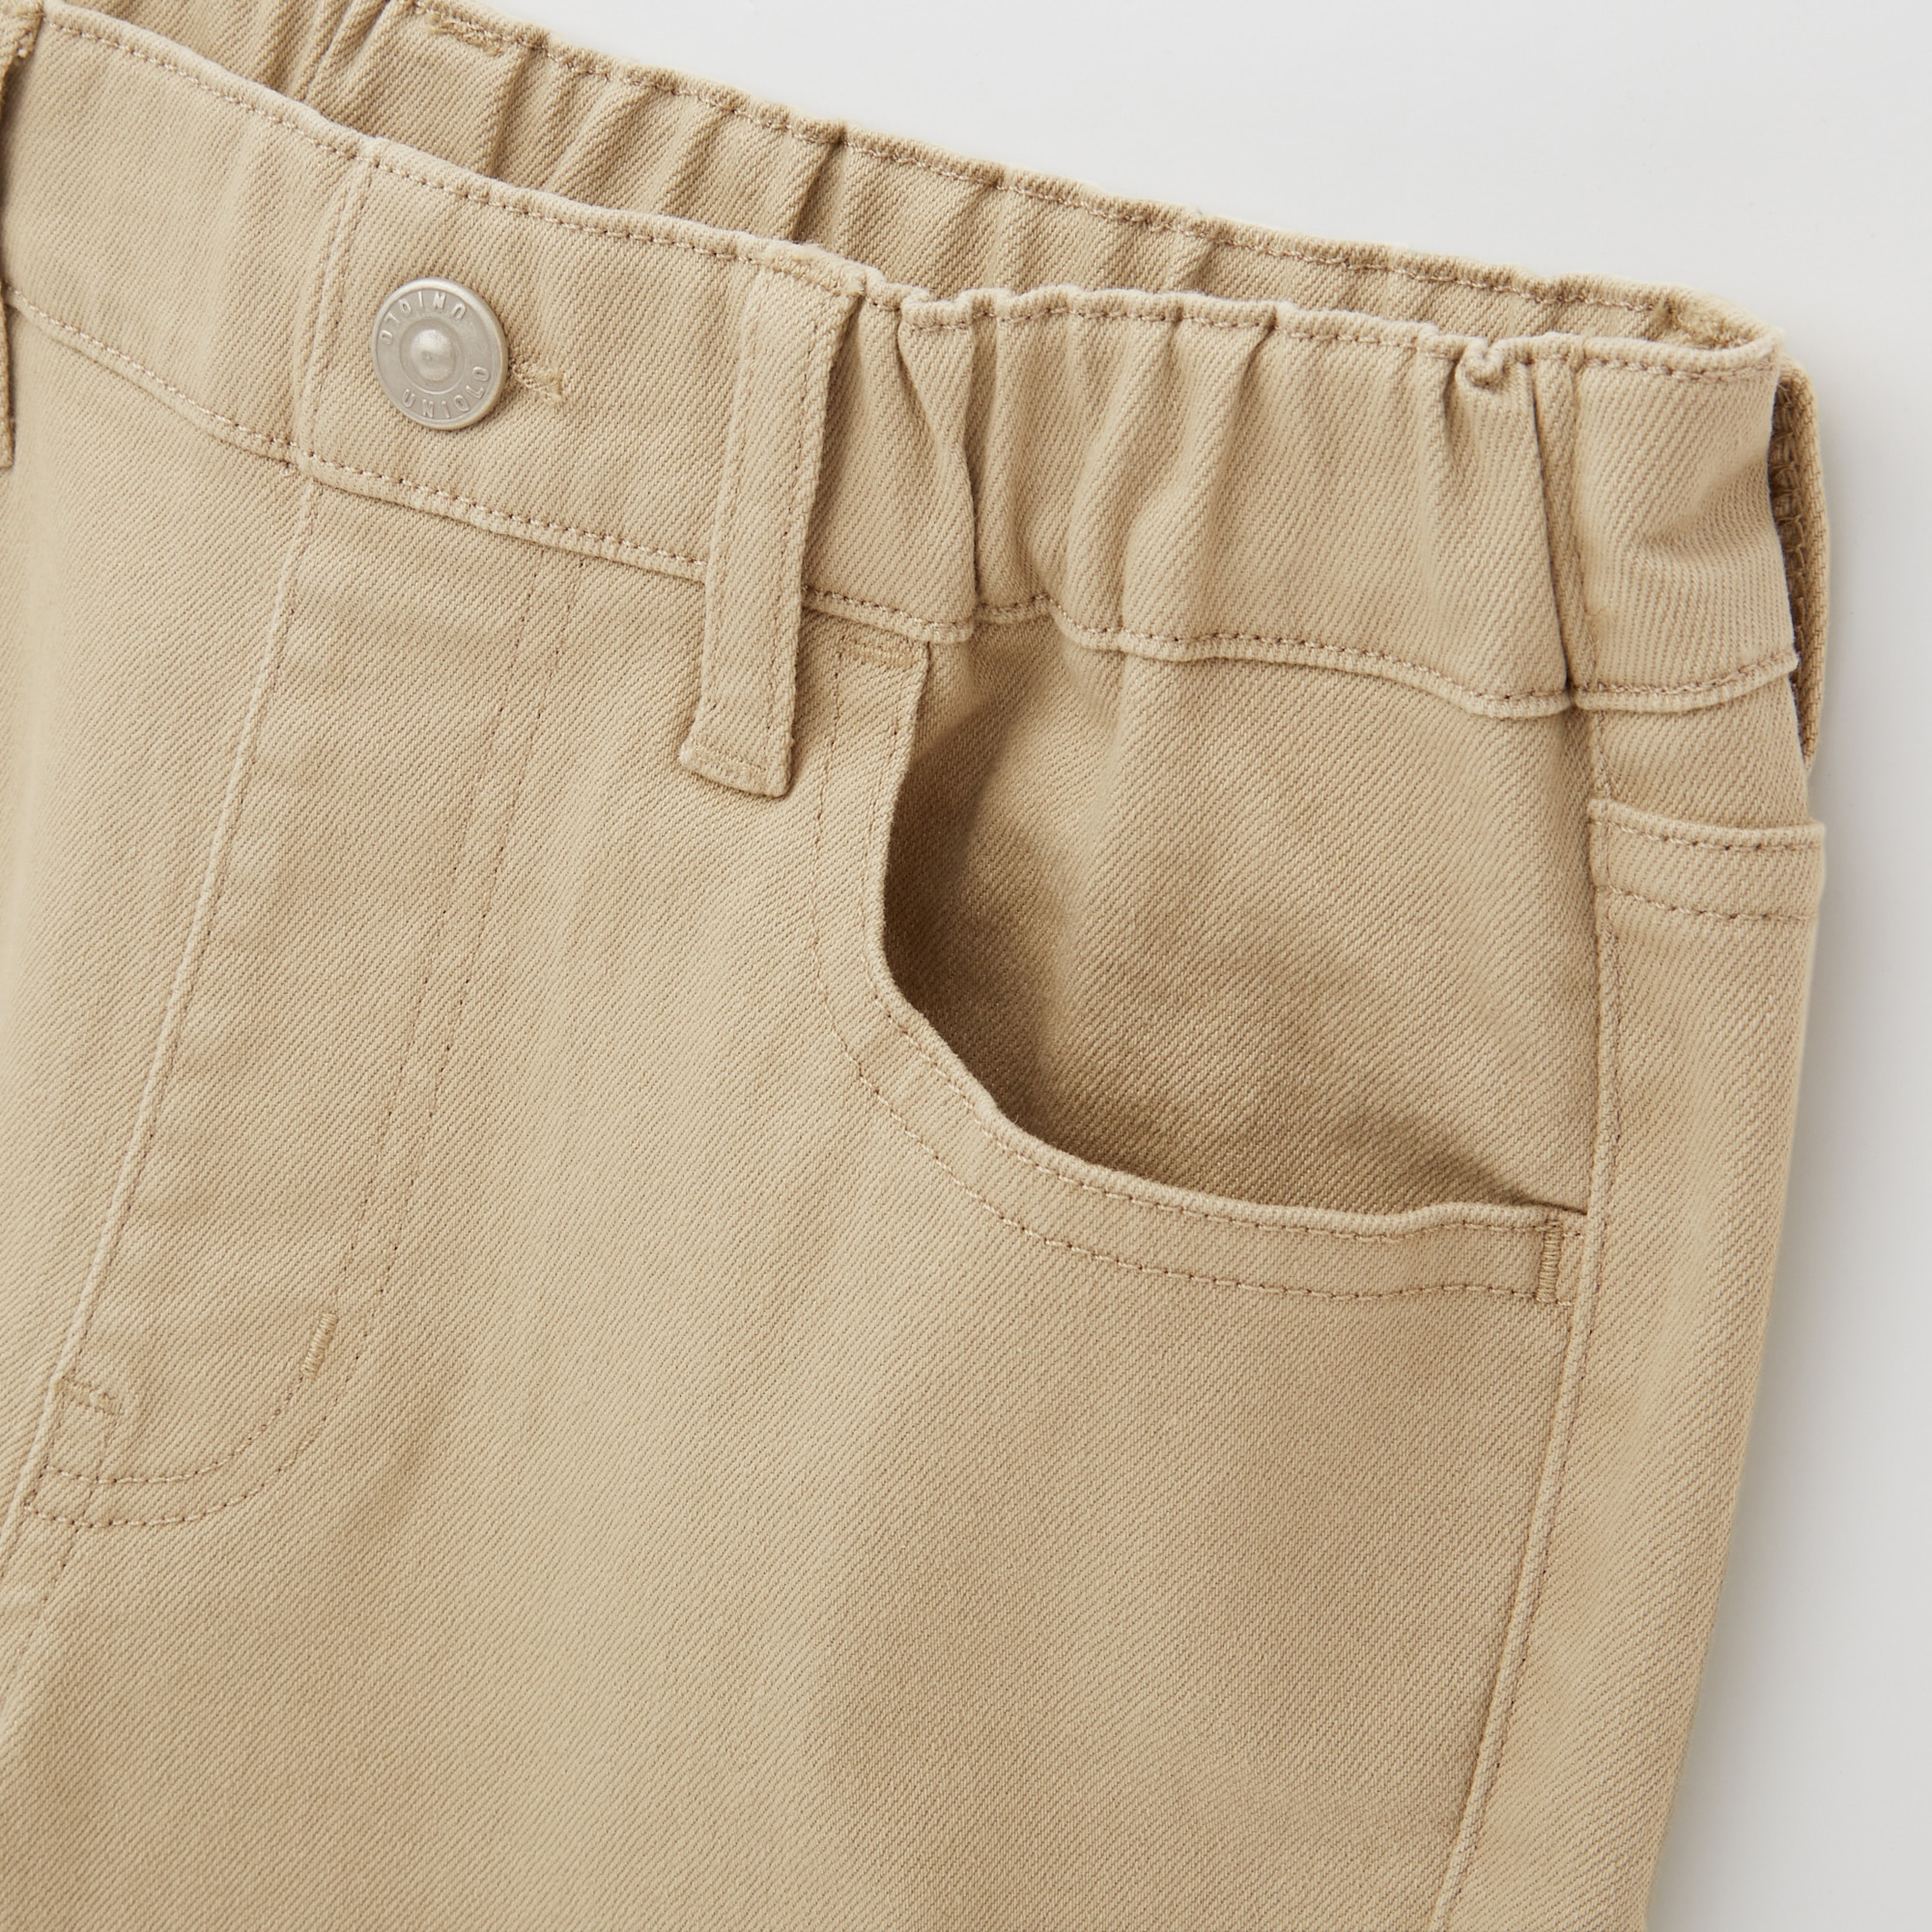 Uniqlo KIDS ULTRA STRETCH SLIM-FIT PULL-ON PANTS (ONLINE EXCLUSIVE)